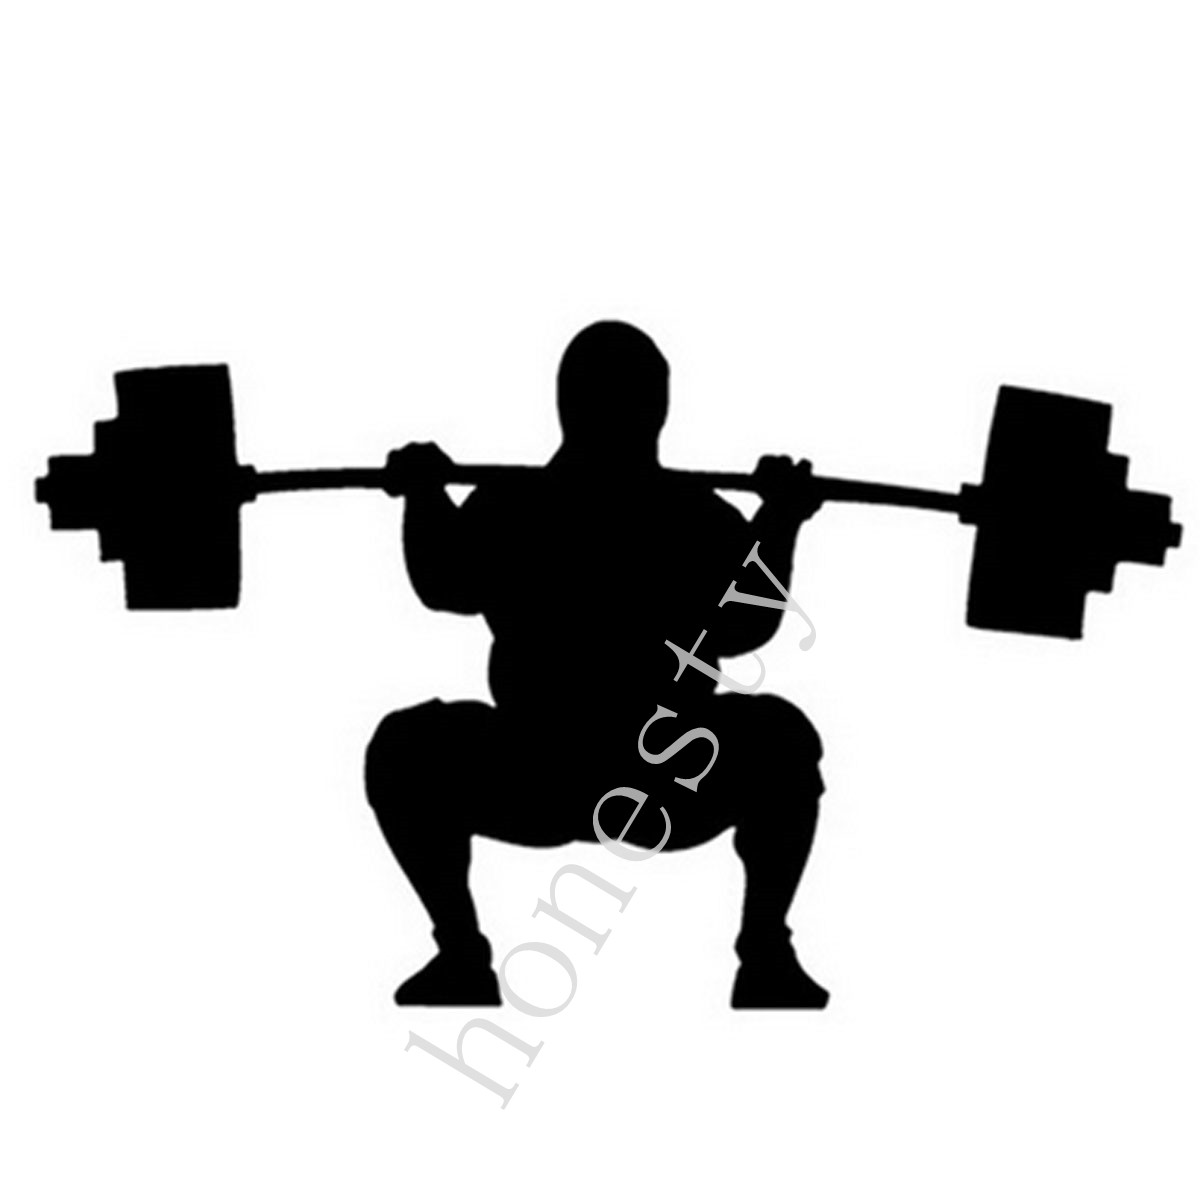 Car sticker design competition - Weightlifter Car Sticker Decal Cartoon Sports Competition Weight Lifting Window Decoration Car Stickers China